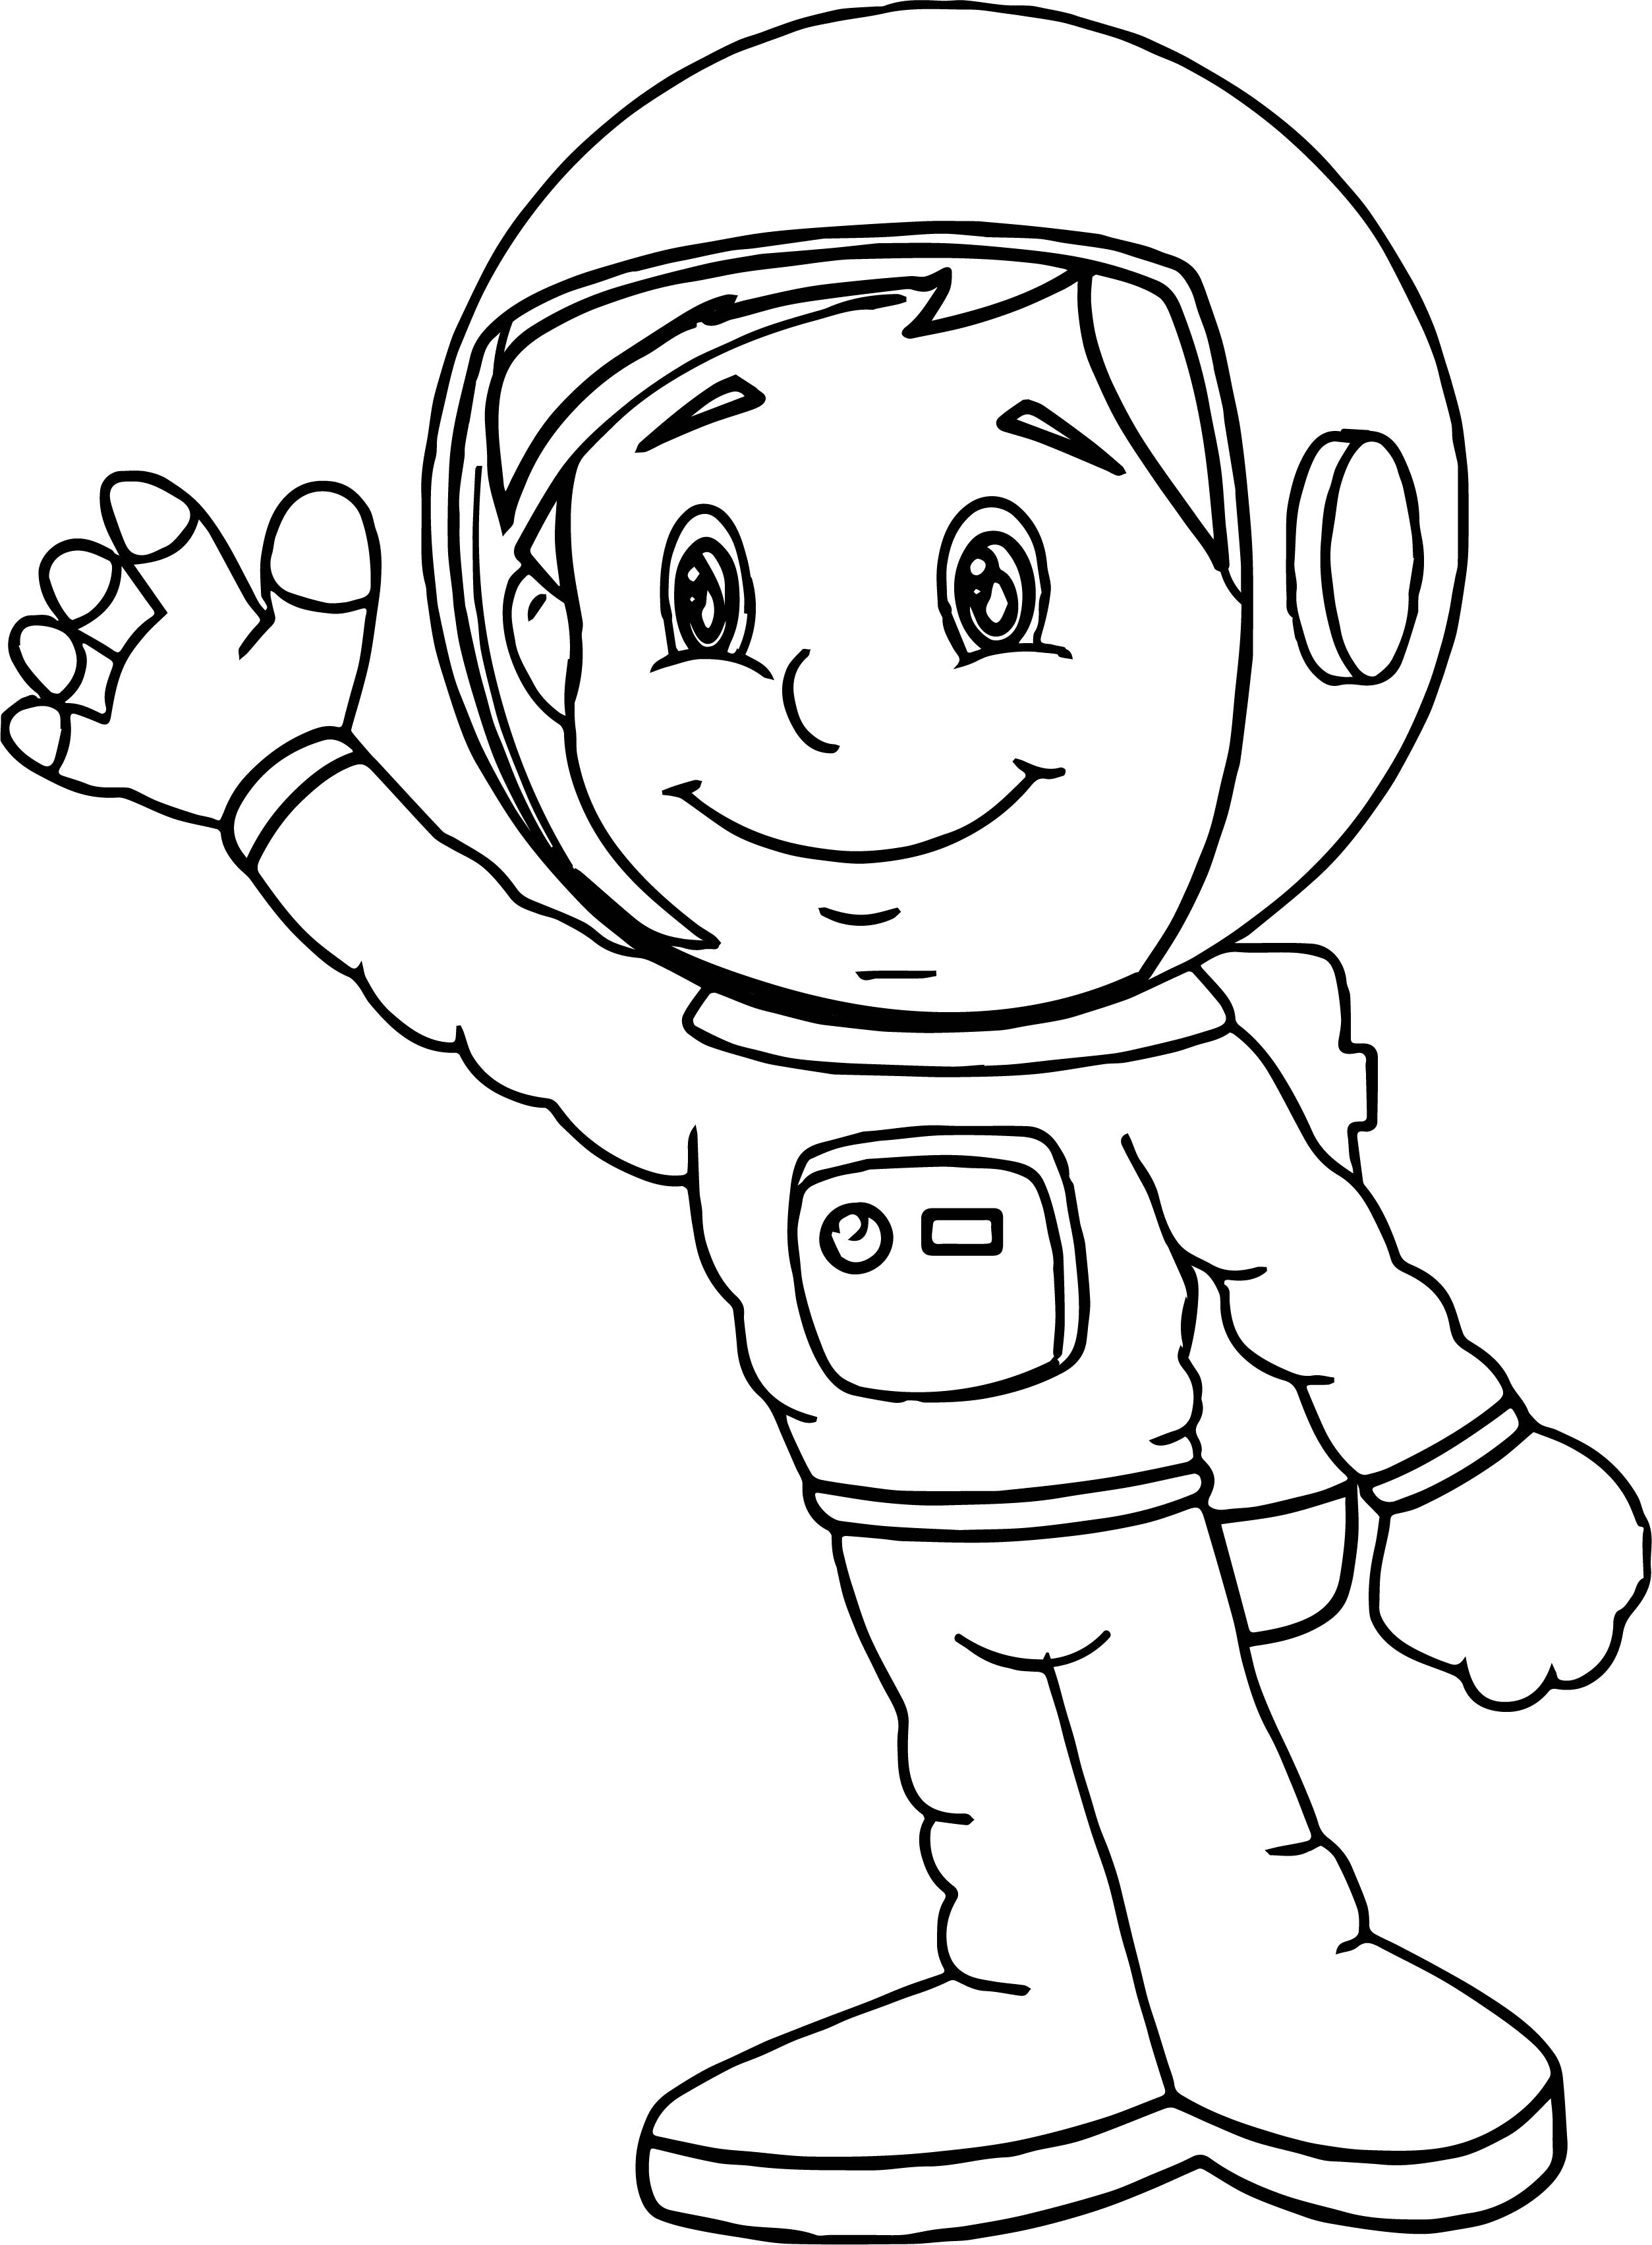 astronaut for coloring free printable astronaut coloring pages xyzcoloring for astronaut coloring